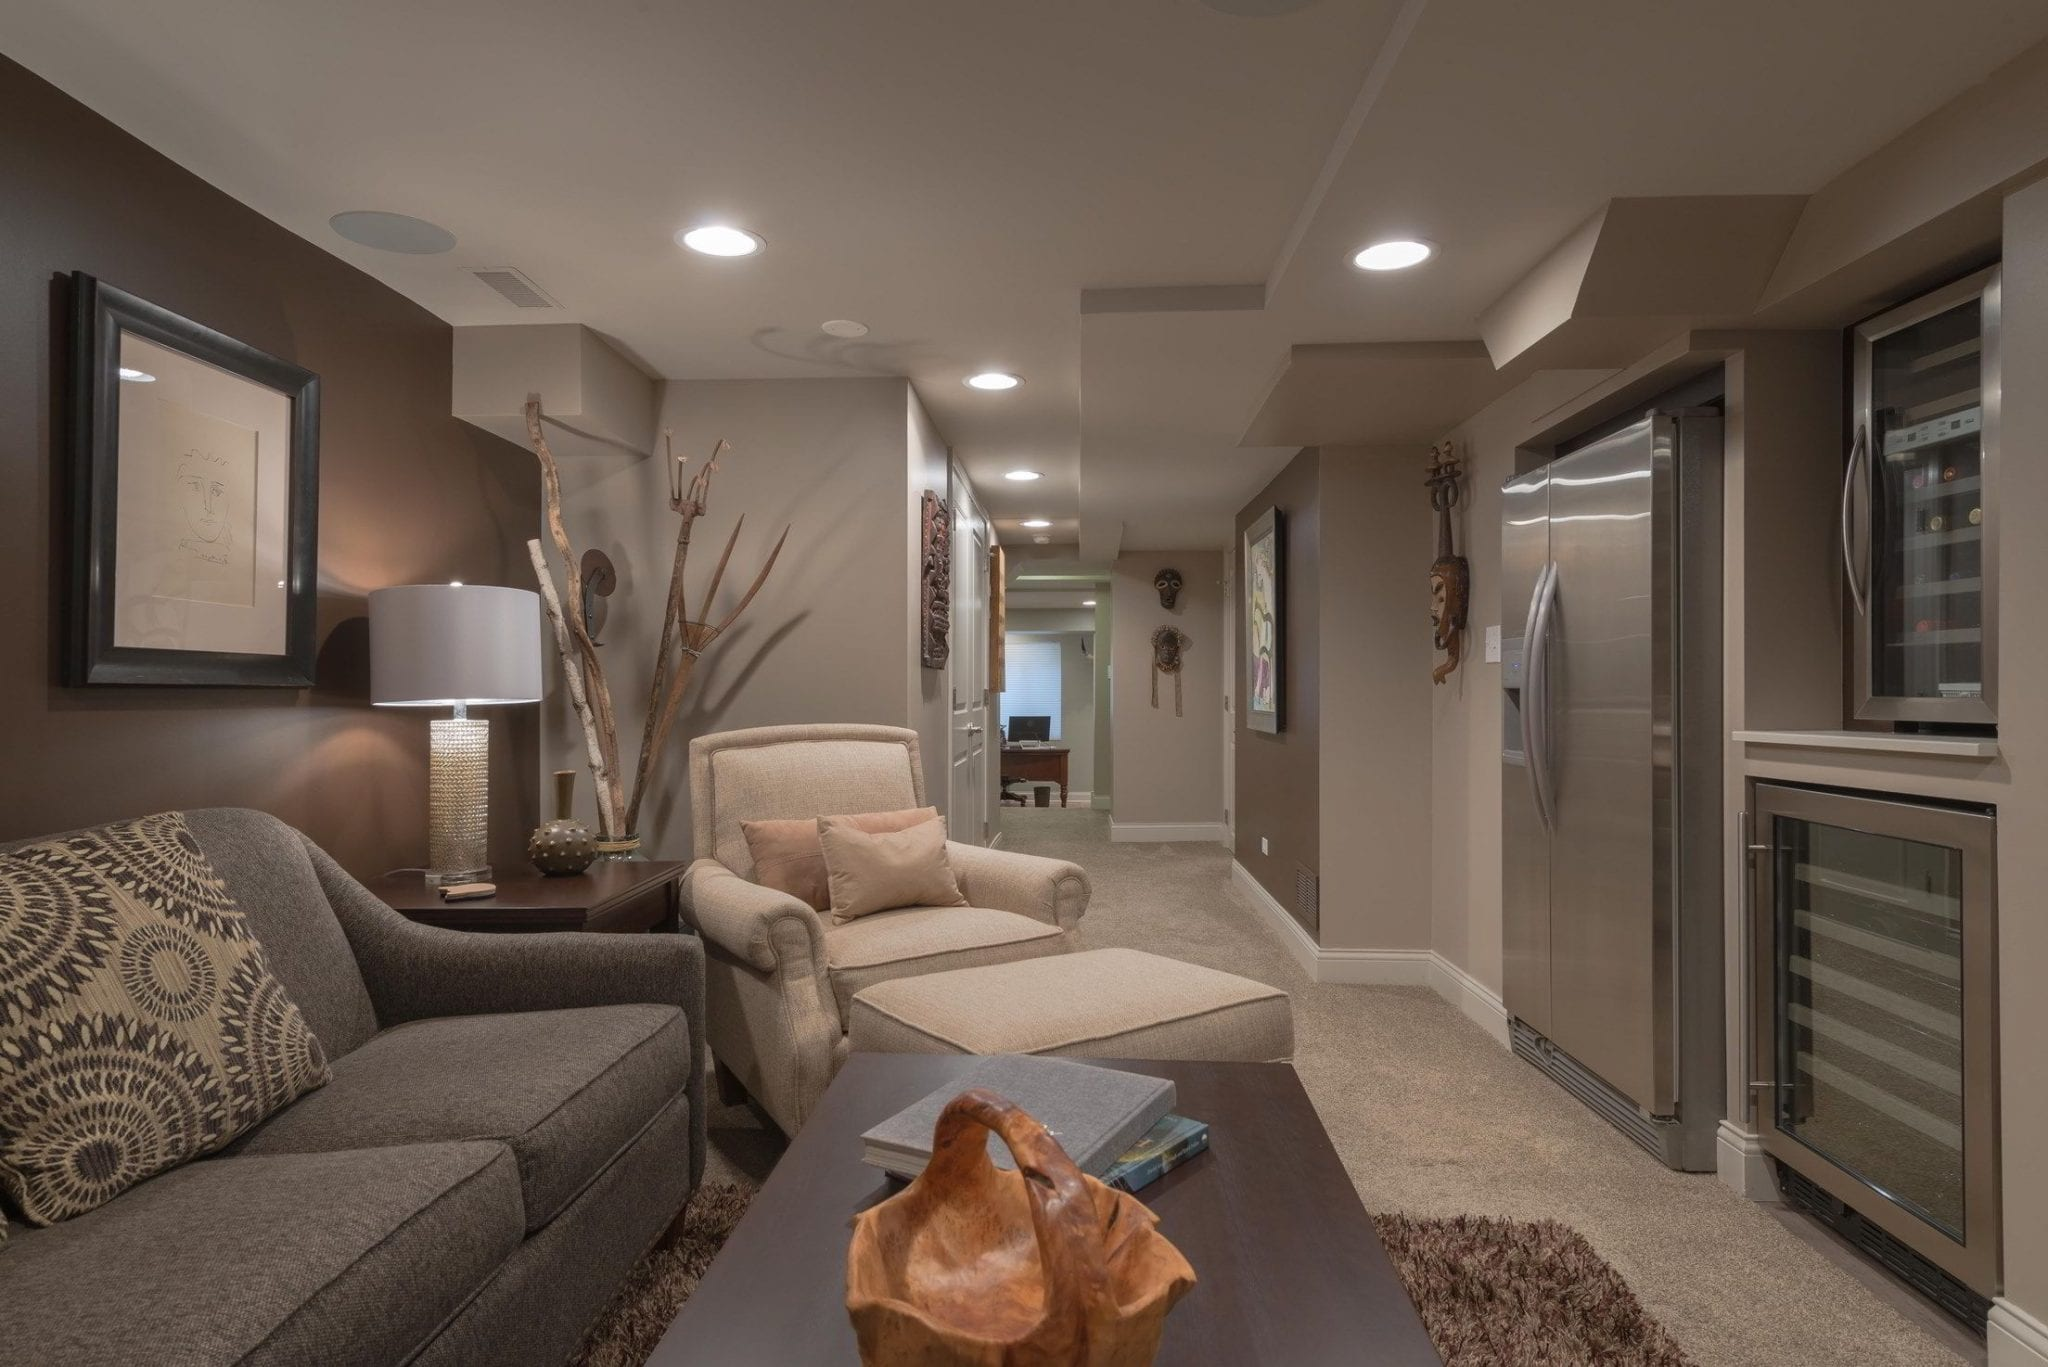 Basement Renovation - Color & Design Consultations | Custom Home Furnishing & Home Accessories